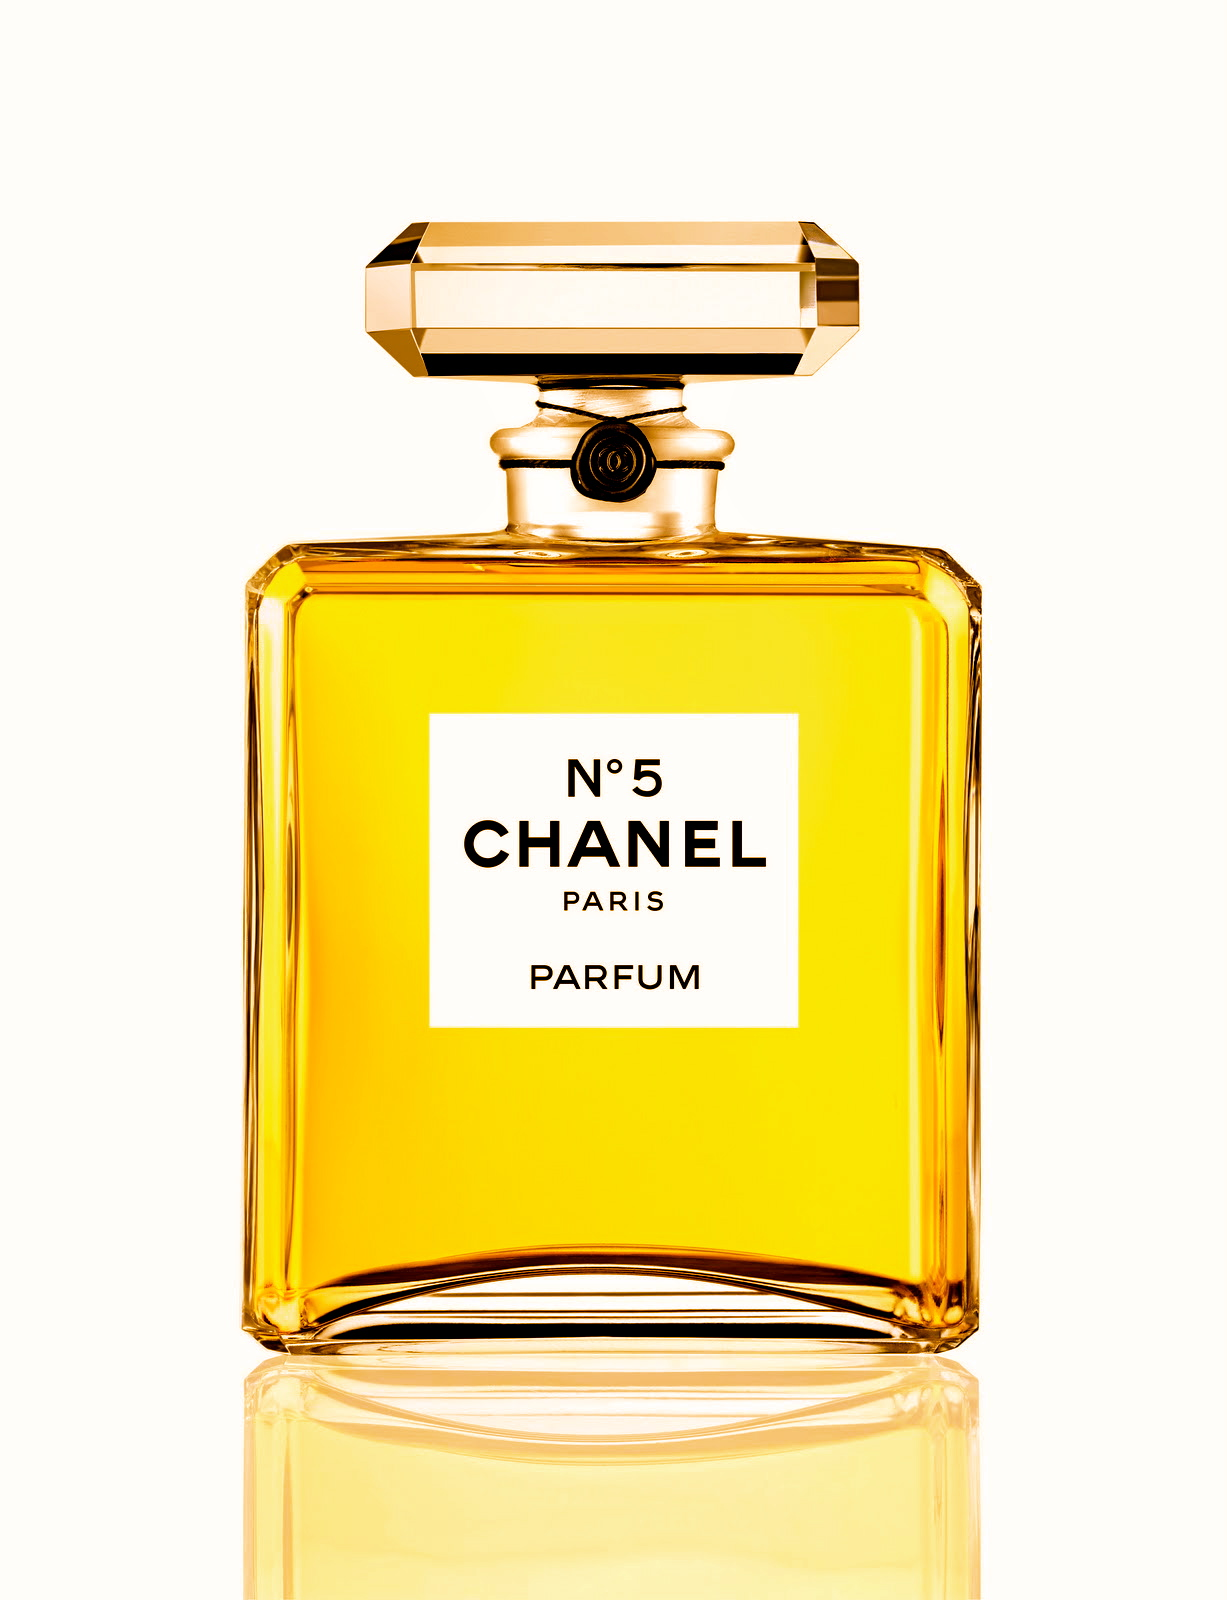 chanel no 5 Part of chanel no 5's enduring success stems from its status as an aspirational purchase, which allows women of different income levels to get a whiff of the wealth and exclusivity that the.